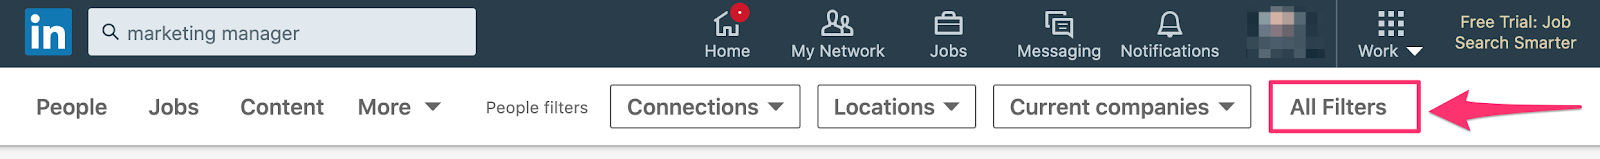 Applying filters to LinkedIn search to find the right connections.